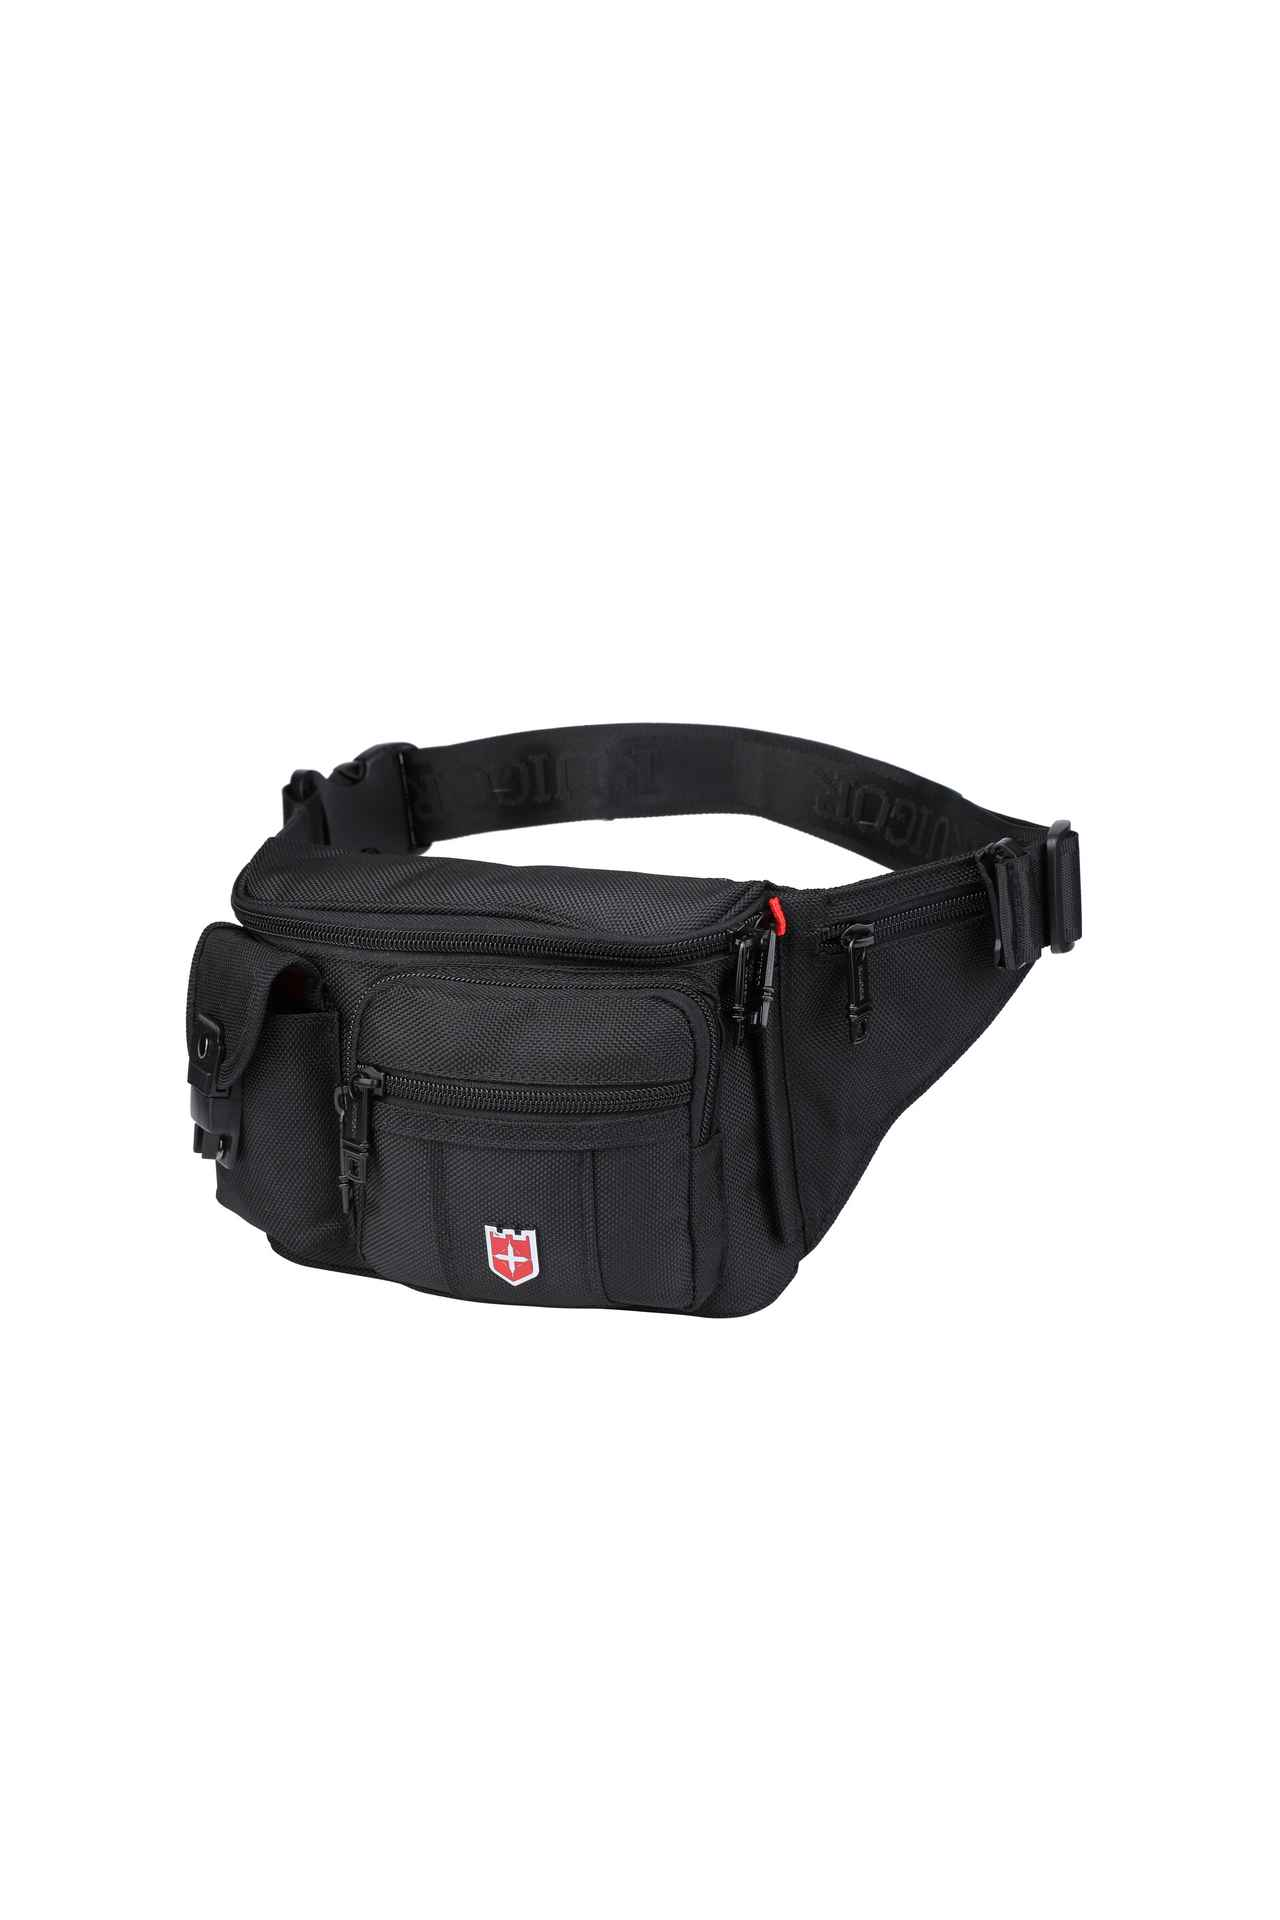 RUIGOR ICON 12 Waist Bag Black